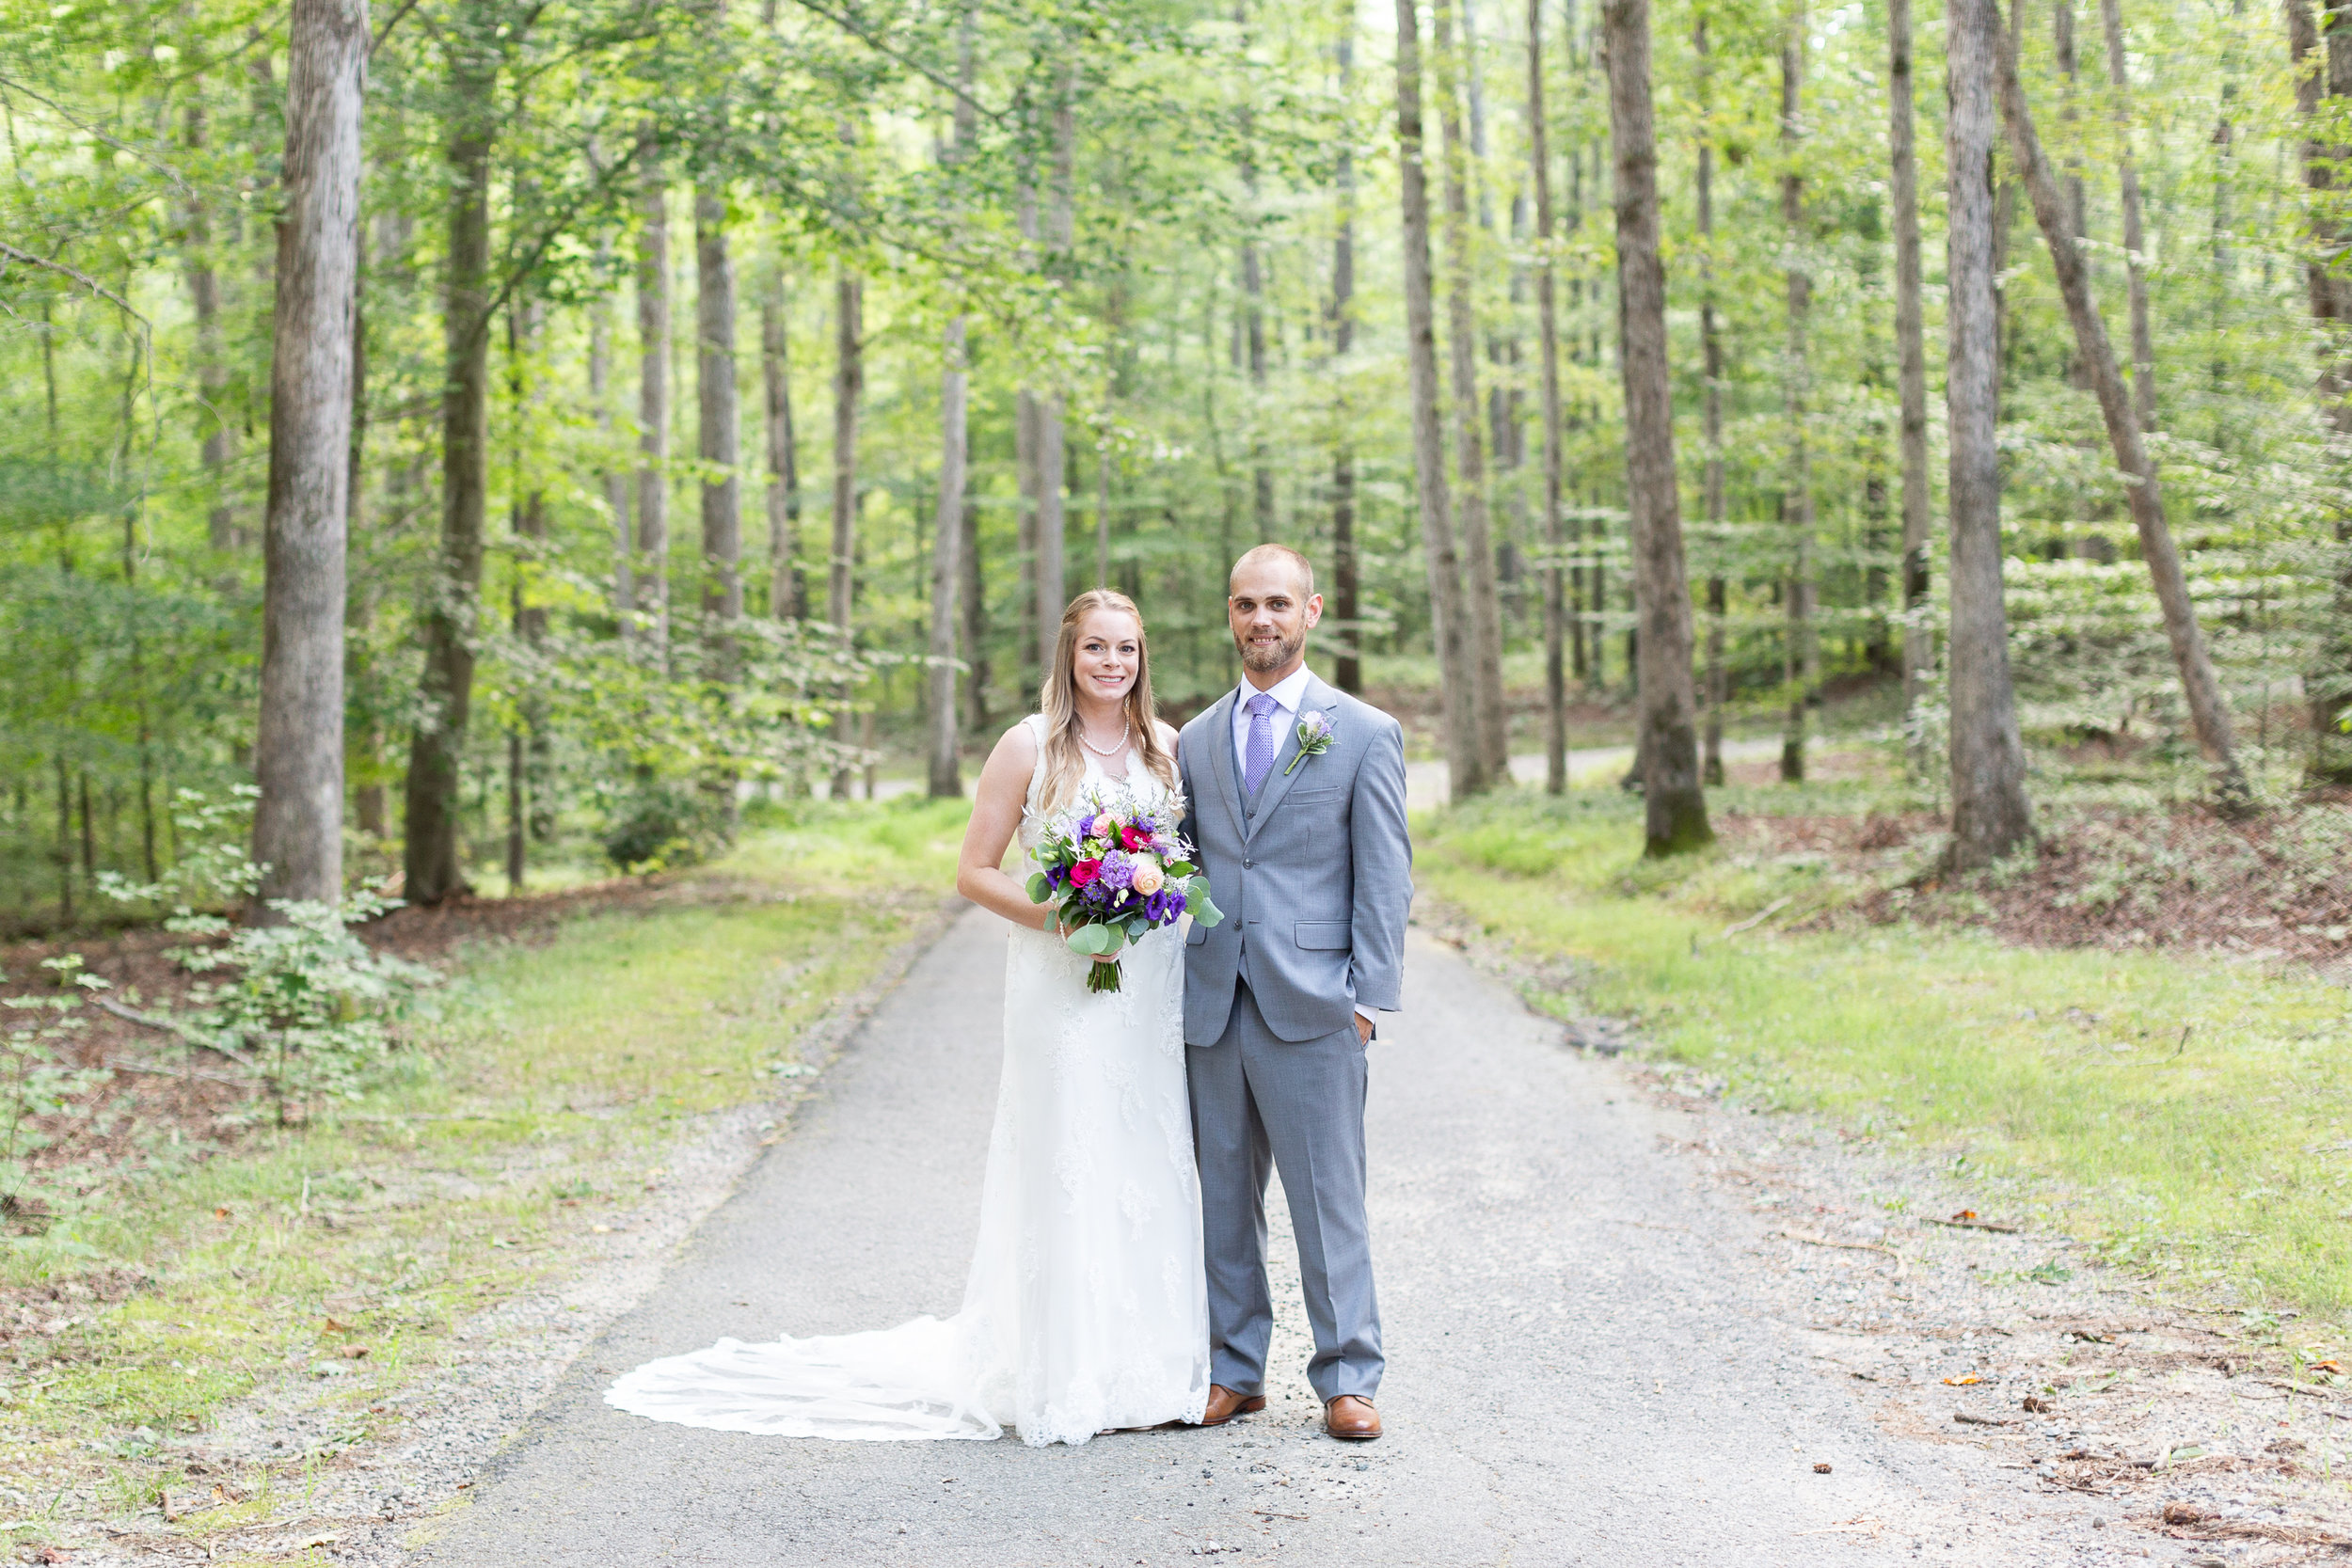 JacksonWedding_Emily Bartell Photography-324.jpg